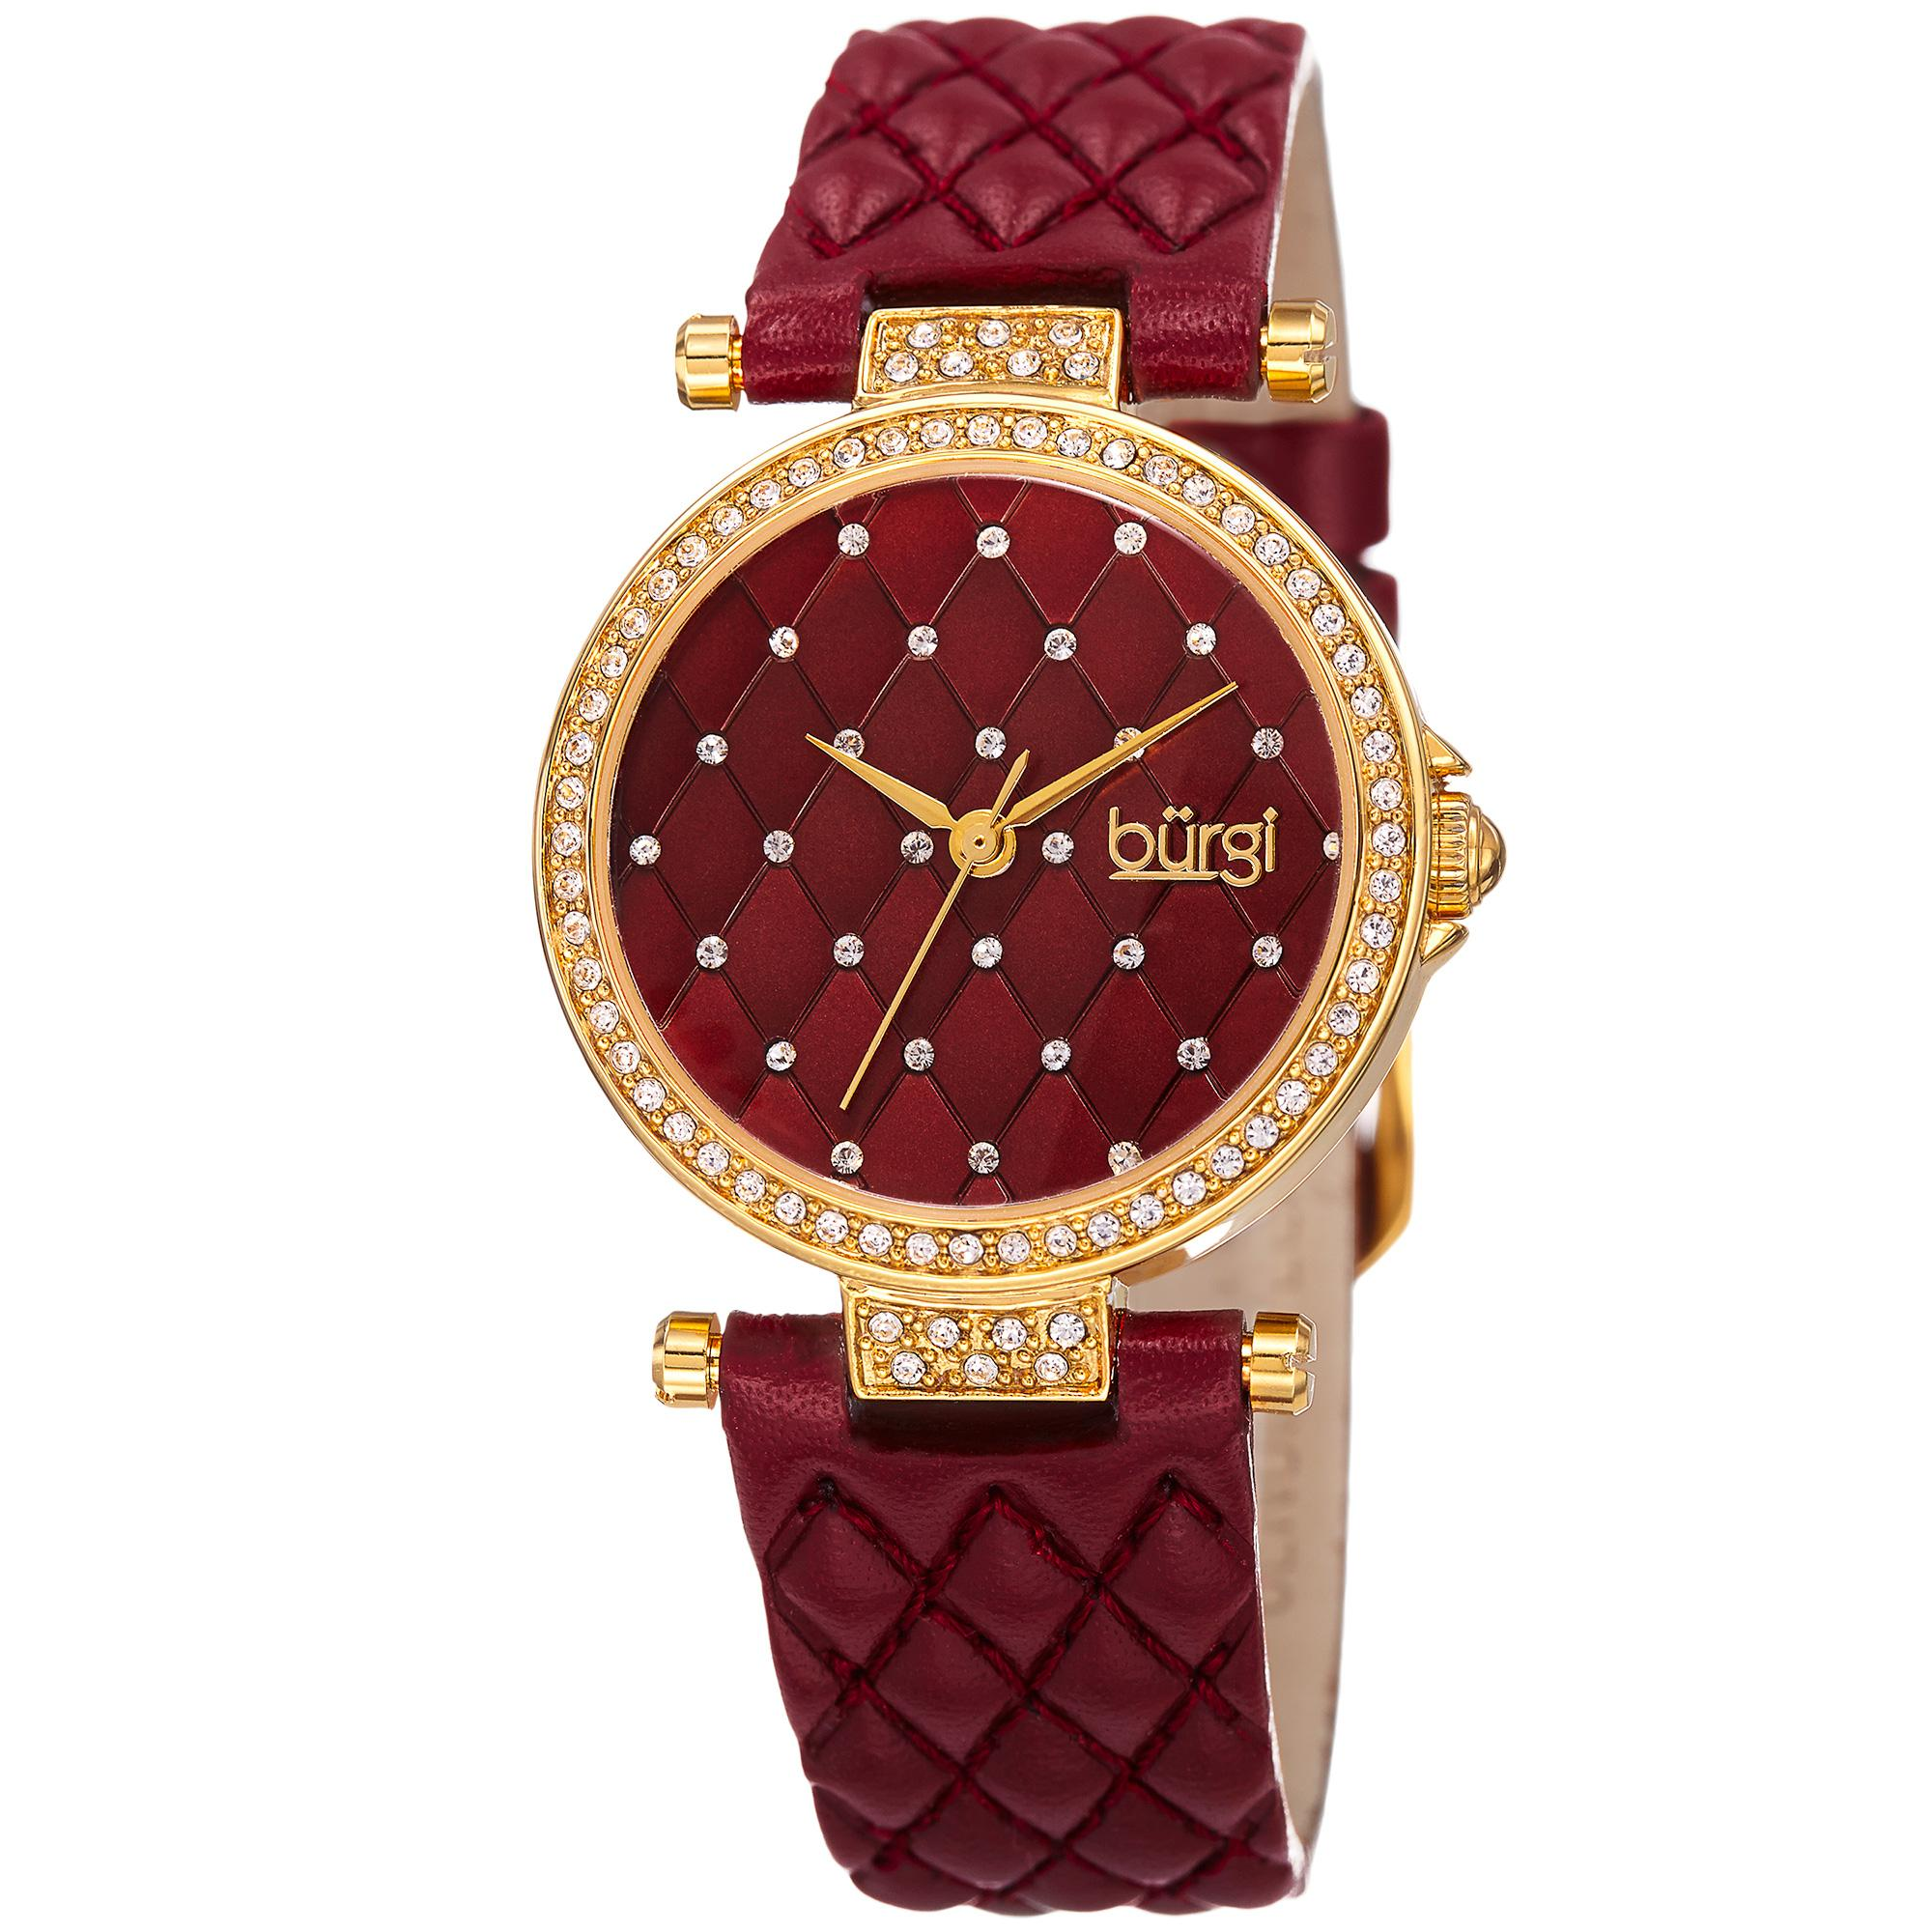 watchshop leather rosemary gardens watches red com radley watch ladies